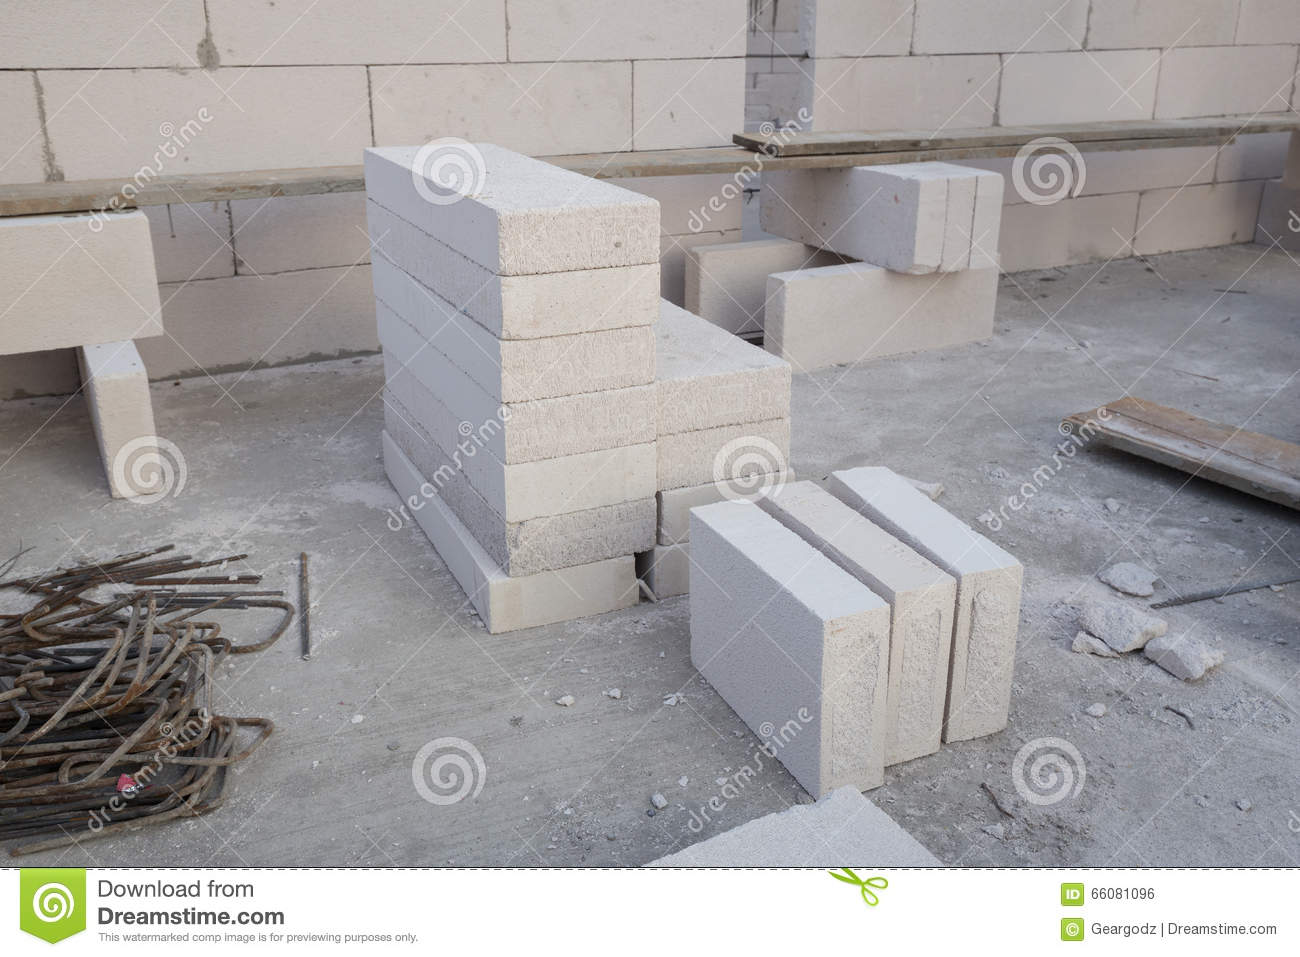 Stack Of White Lightweight Concrete Block Foamed Concrete